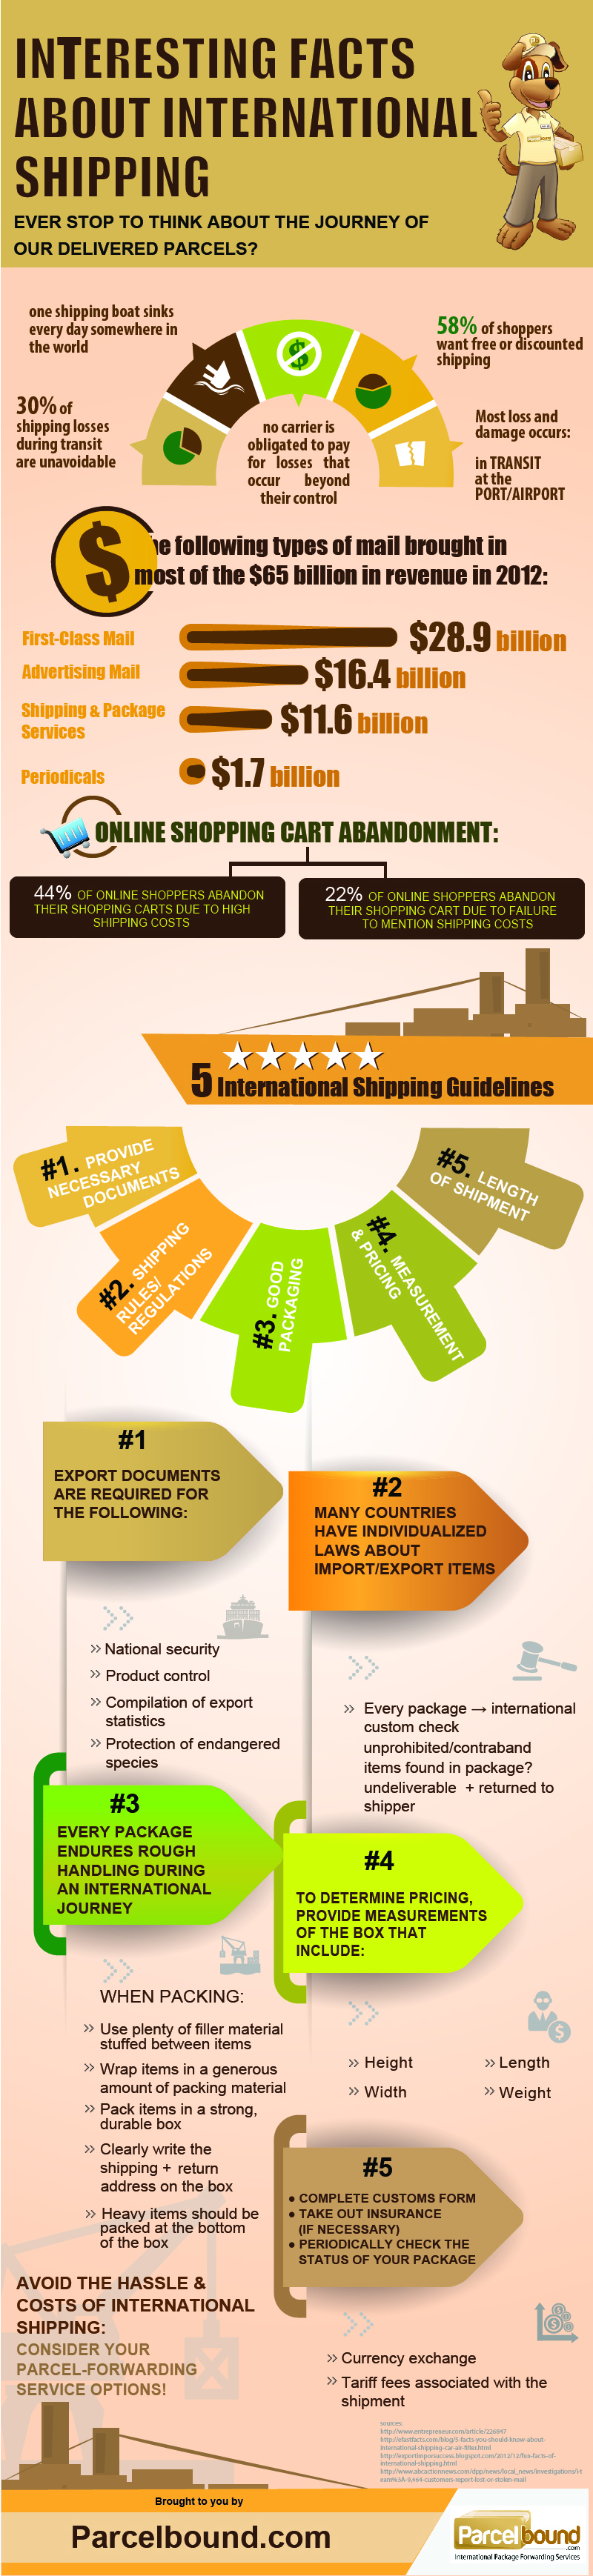 Interesting Facts About International Shipping